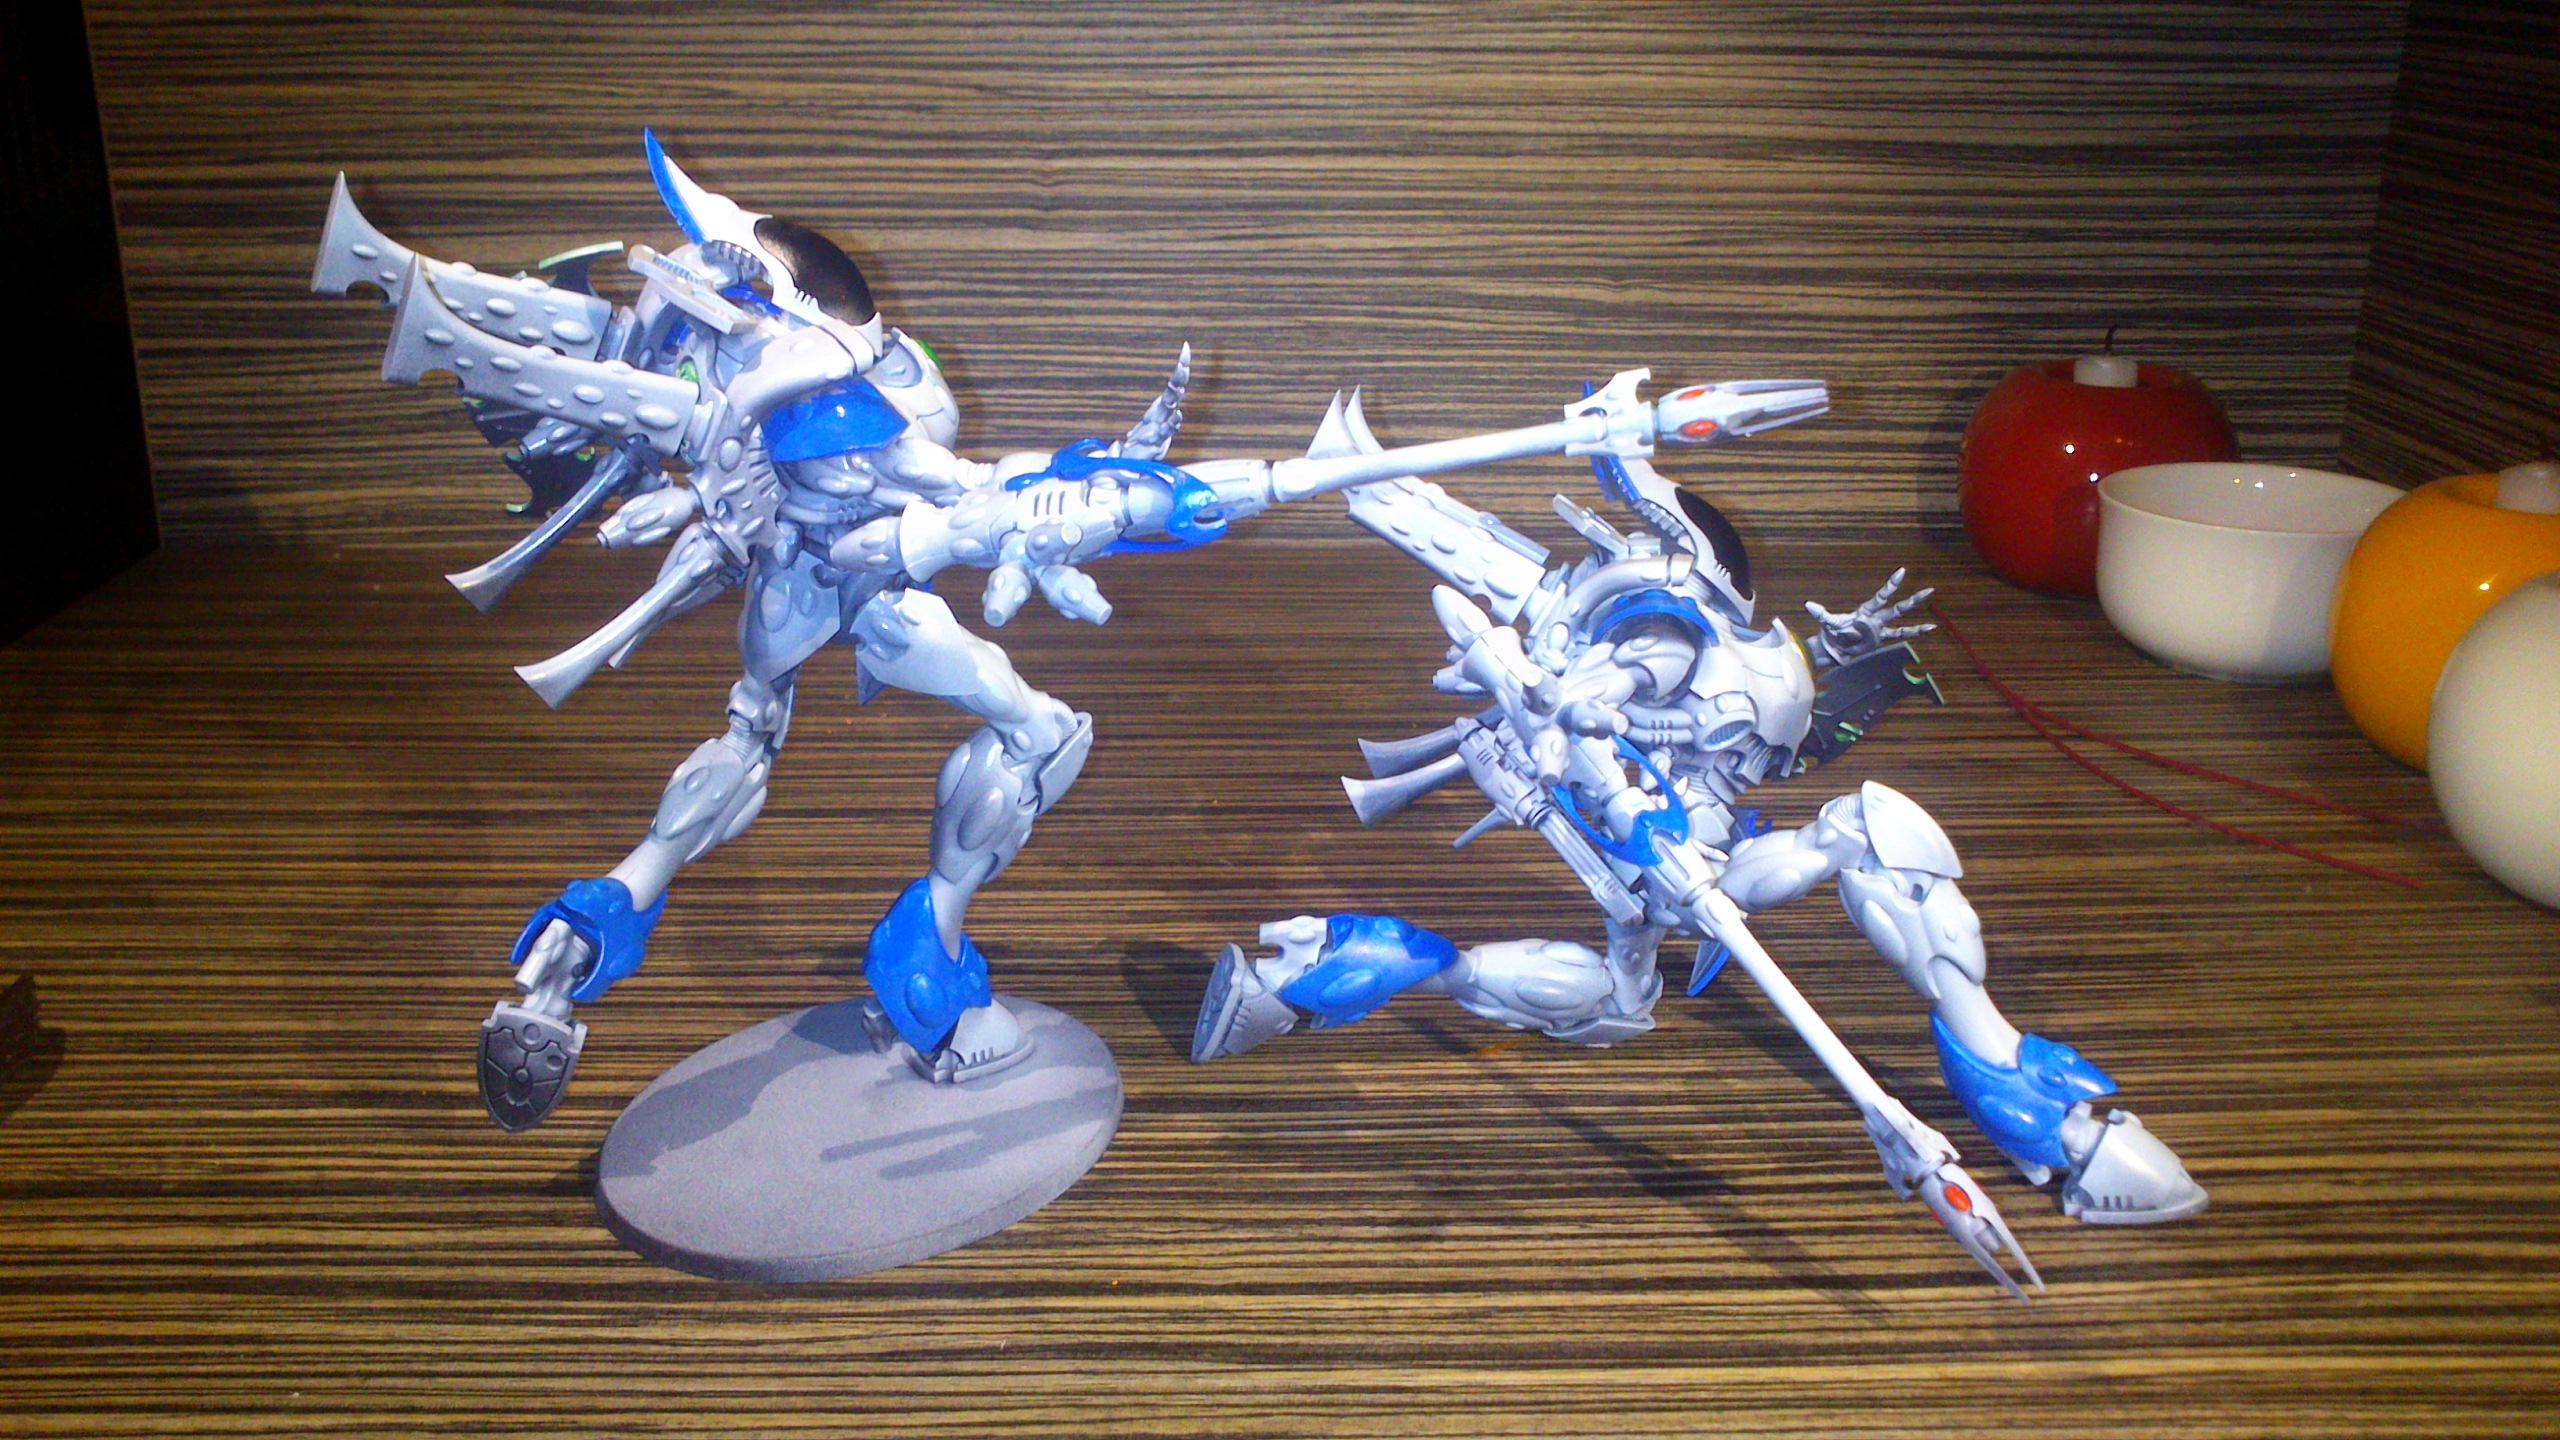 Blue, Blue White, Diorama, Eldar, Eldar Wraith Army, Force, Forest, Forge World, Ghost, Host, Ilyrith, Iyanden, Iybraesil, Kneel, Kneeling, Painting, Phoenix Lord, Pose, Posing, Run, Running, Scatterlaser, Shadow, Snow, Spectres, Spirit, Spirit Host, Spirit Only, Suncannon, Team, Warhammer 40,000, Warhammer Fantasy, Waveserpent, White, Winter, Wraith, Wraith Host, Wraith Only, Wraithguard, Wraithknight, Wraithknights, Wraithlord